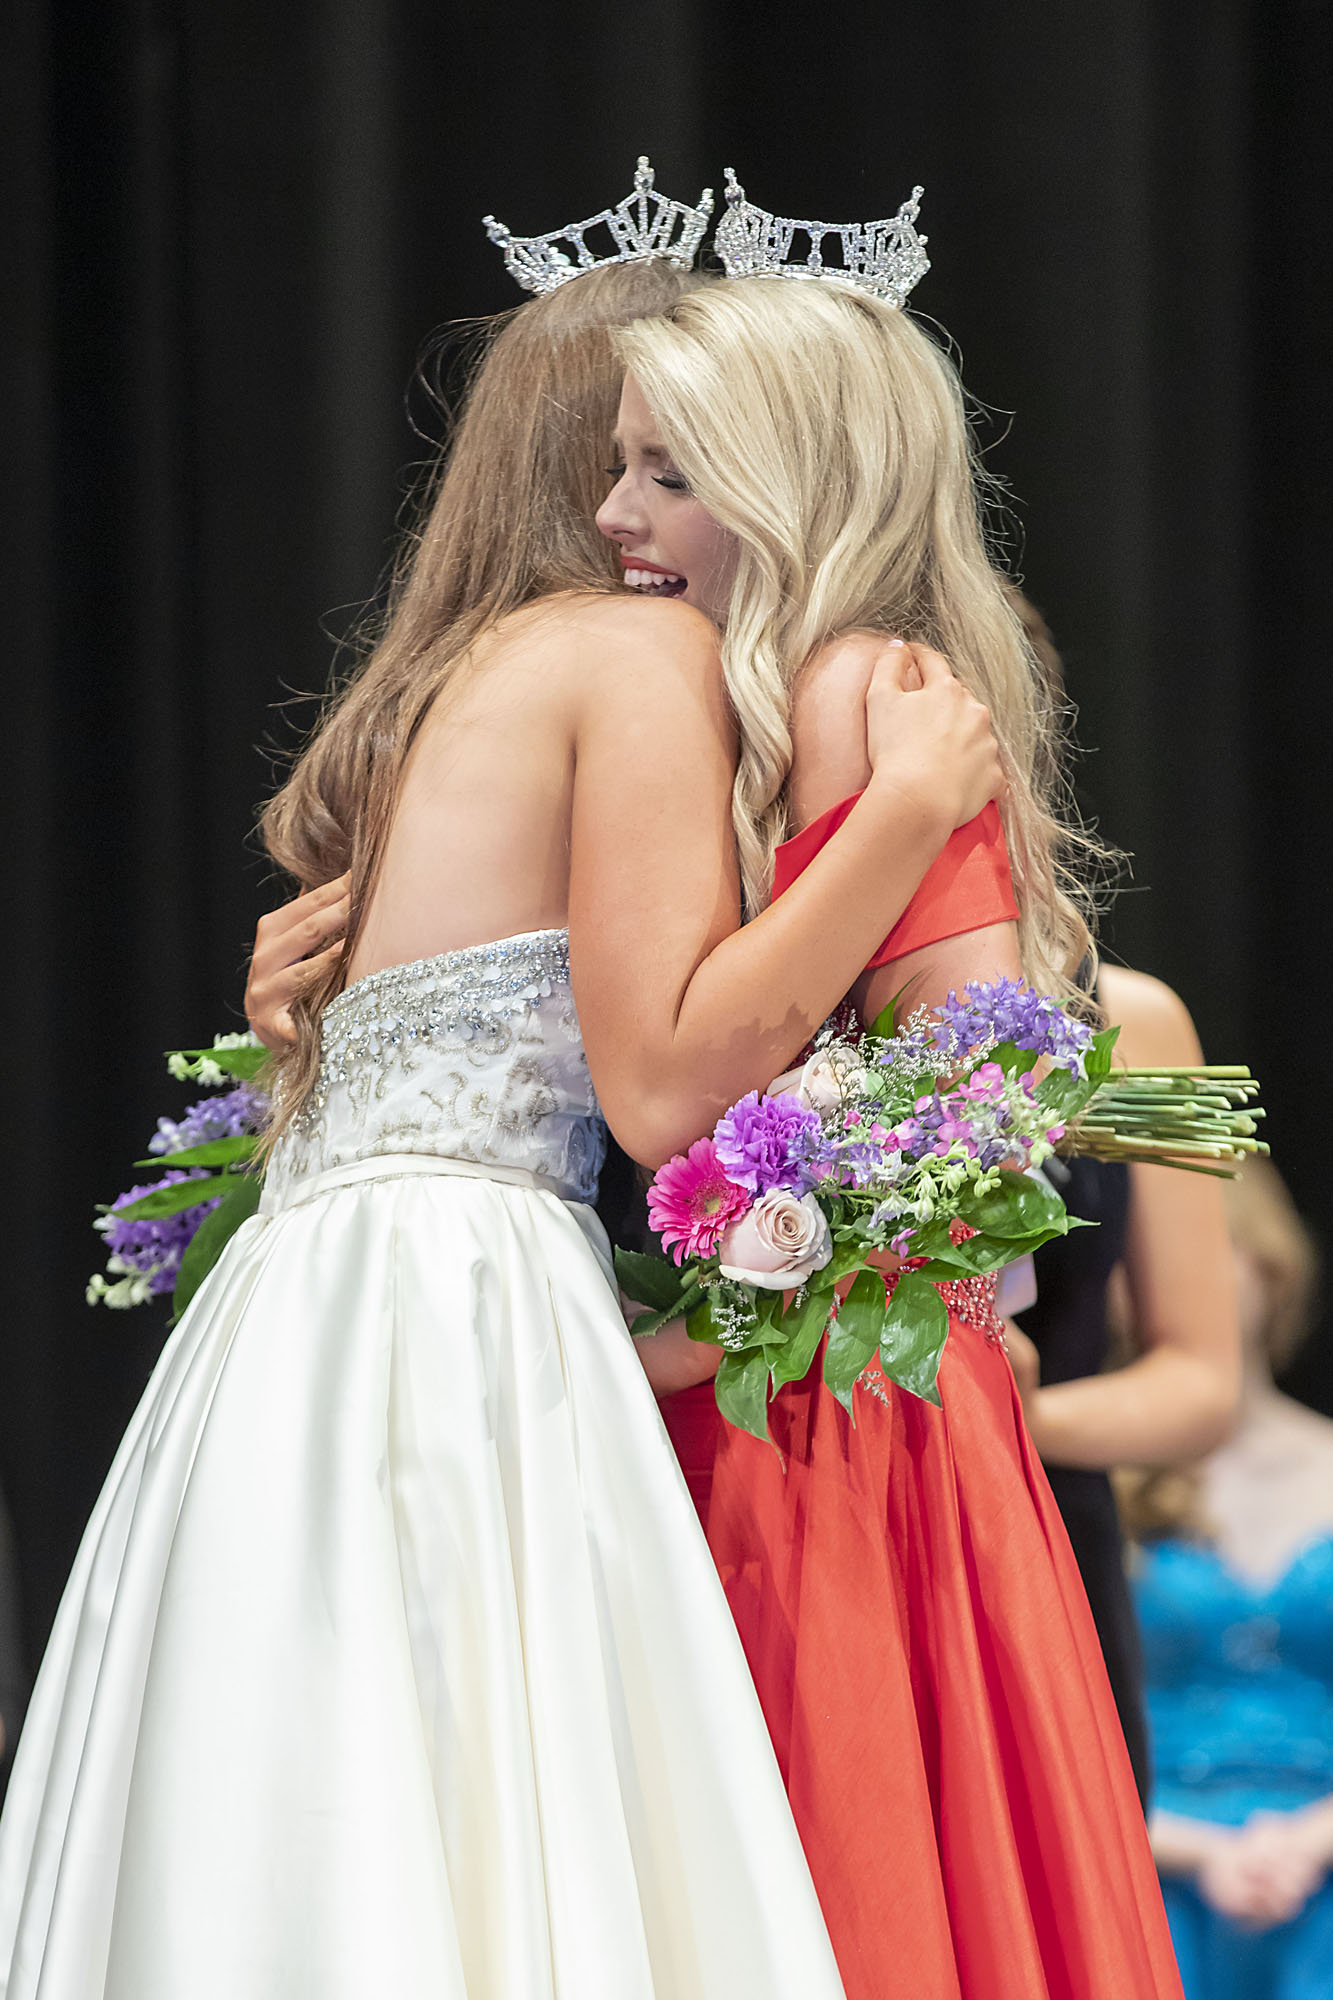 Sisters celebrate crowning achievements in Miss Trussville pageant